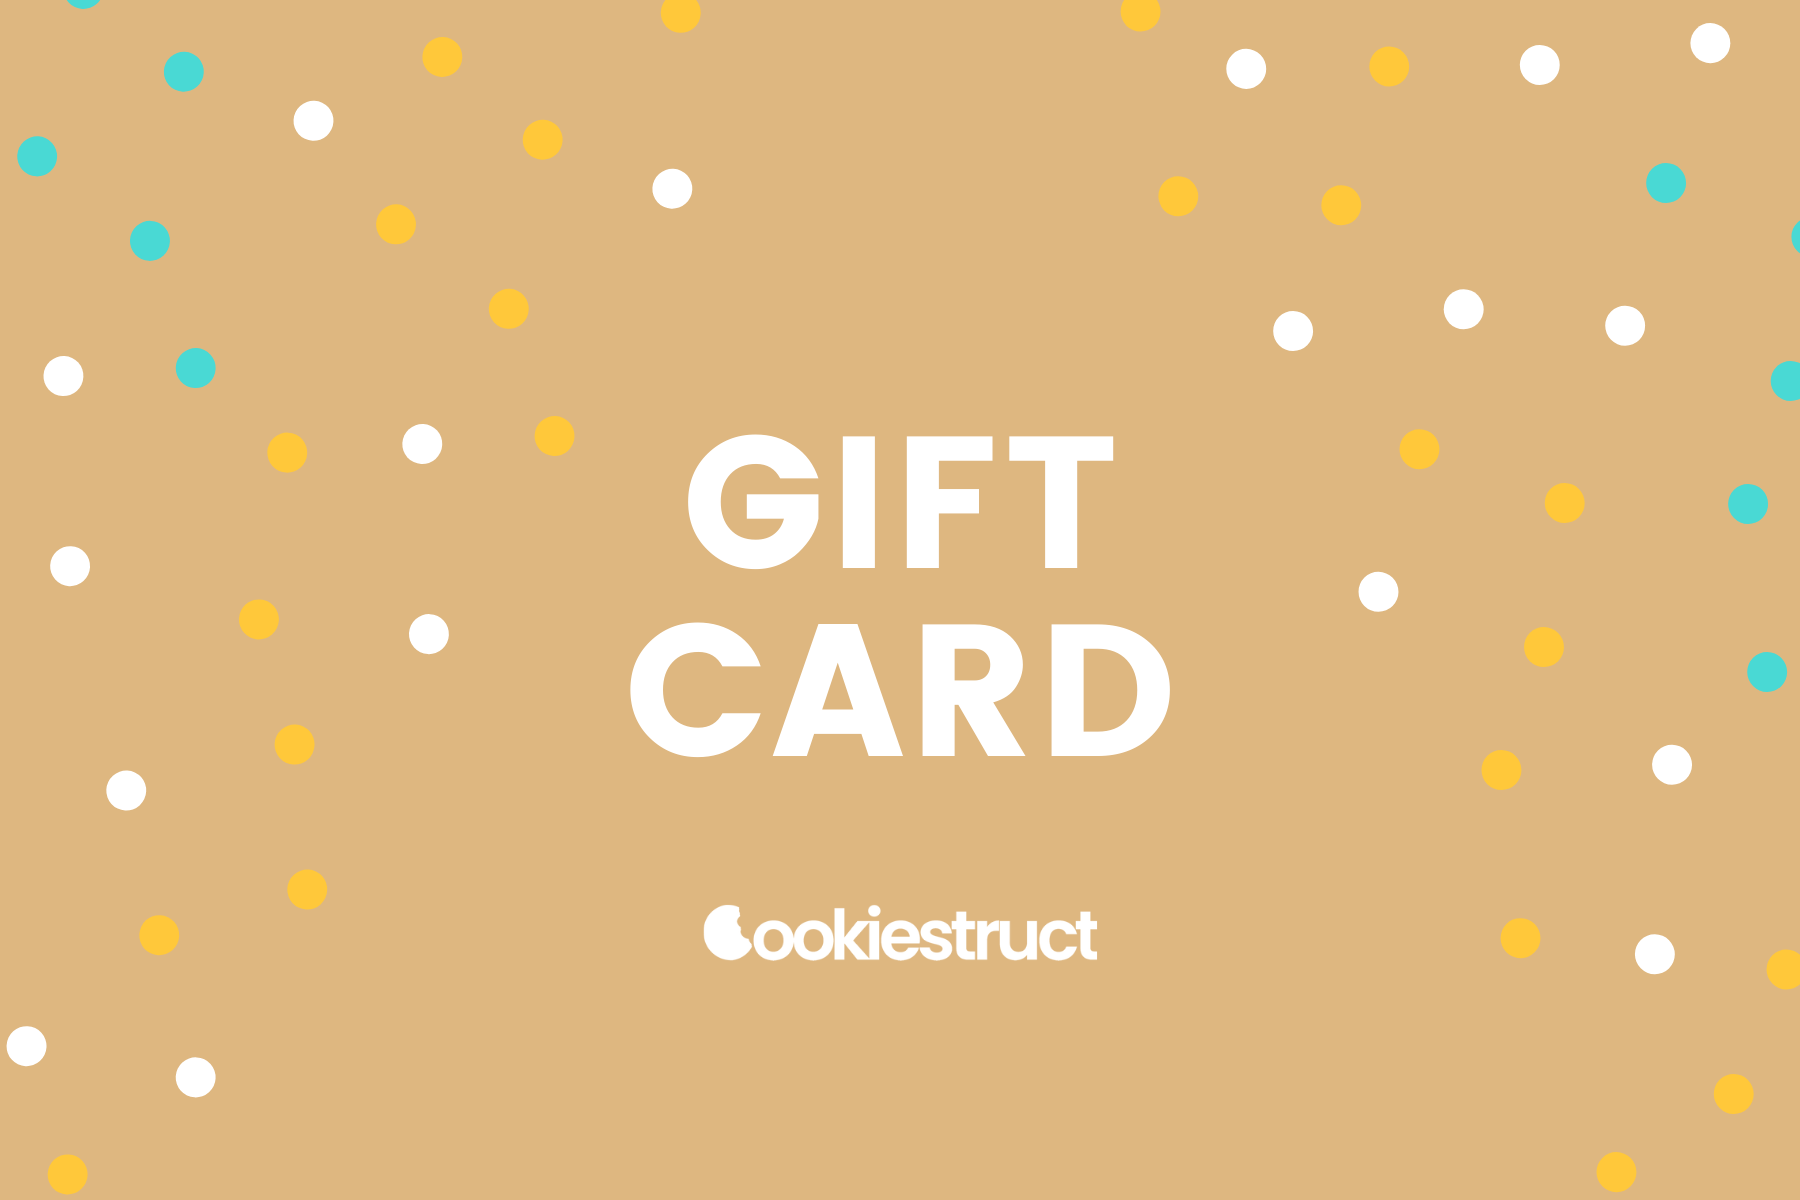 Cookiestruct Gift Card